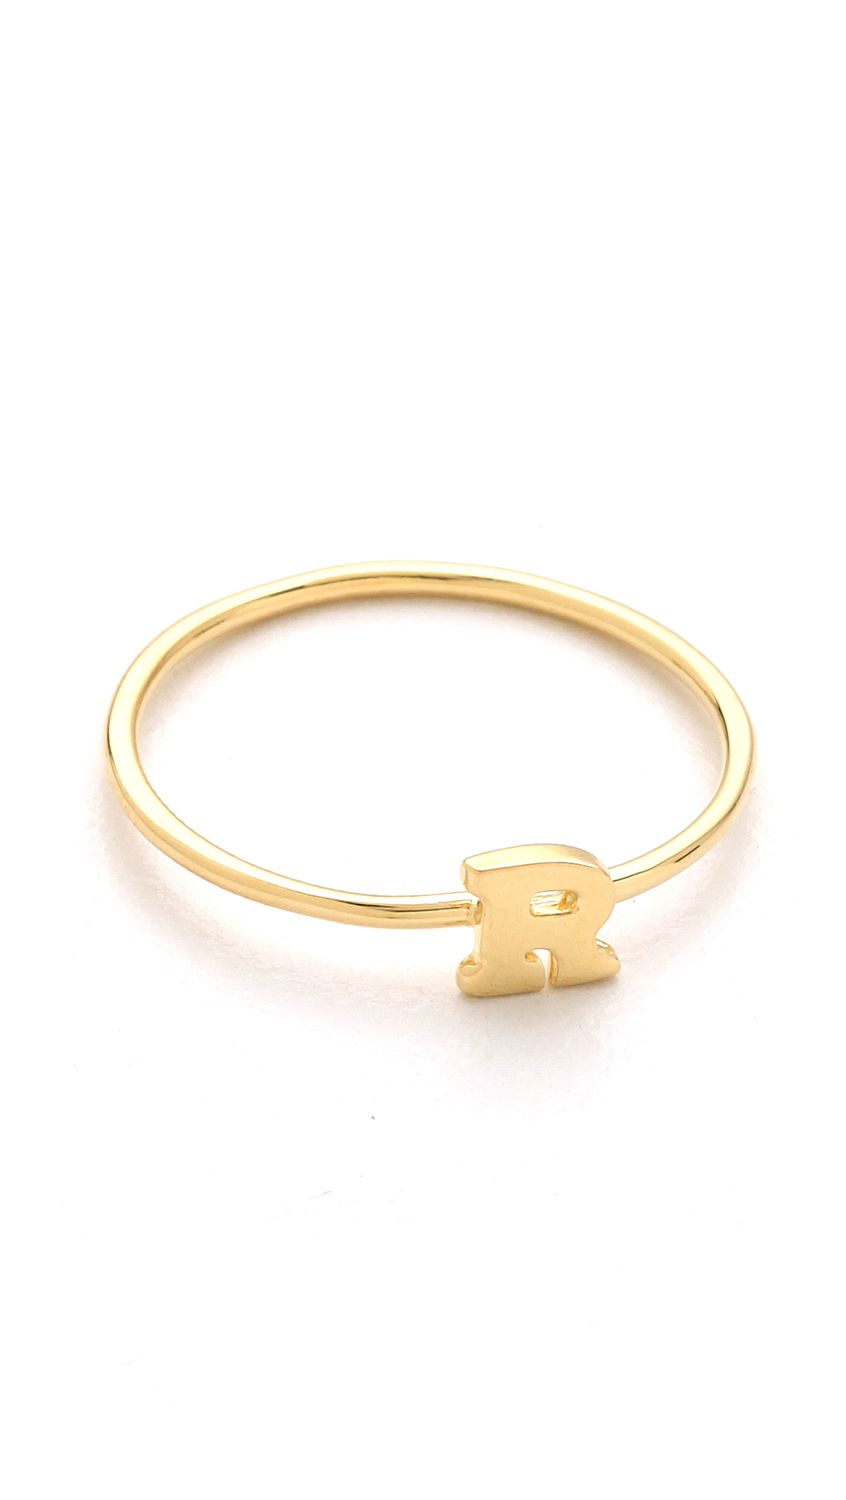 Jacquie aiche ja alphabet letter initial waif ring gold in for Gold ring models with letters